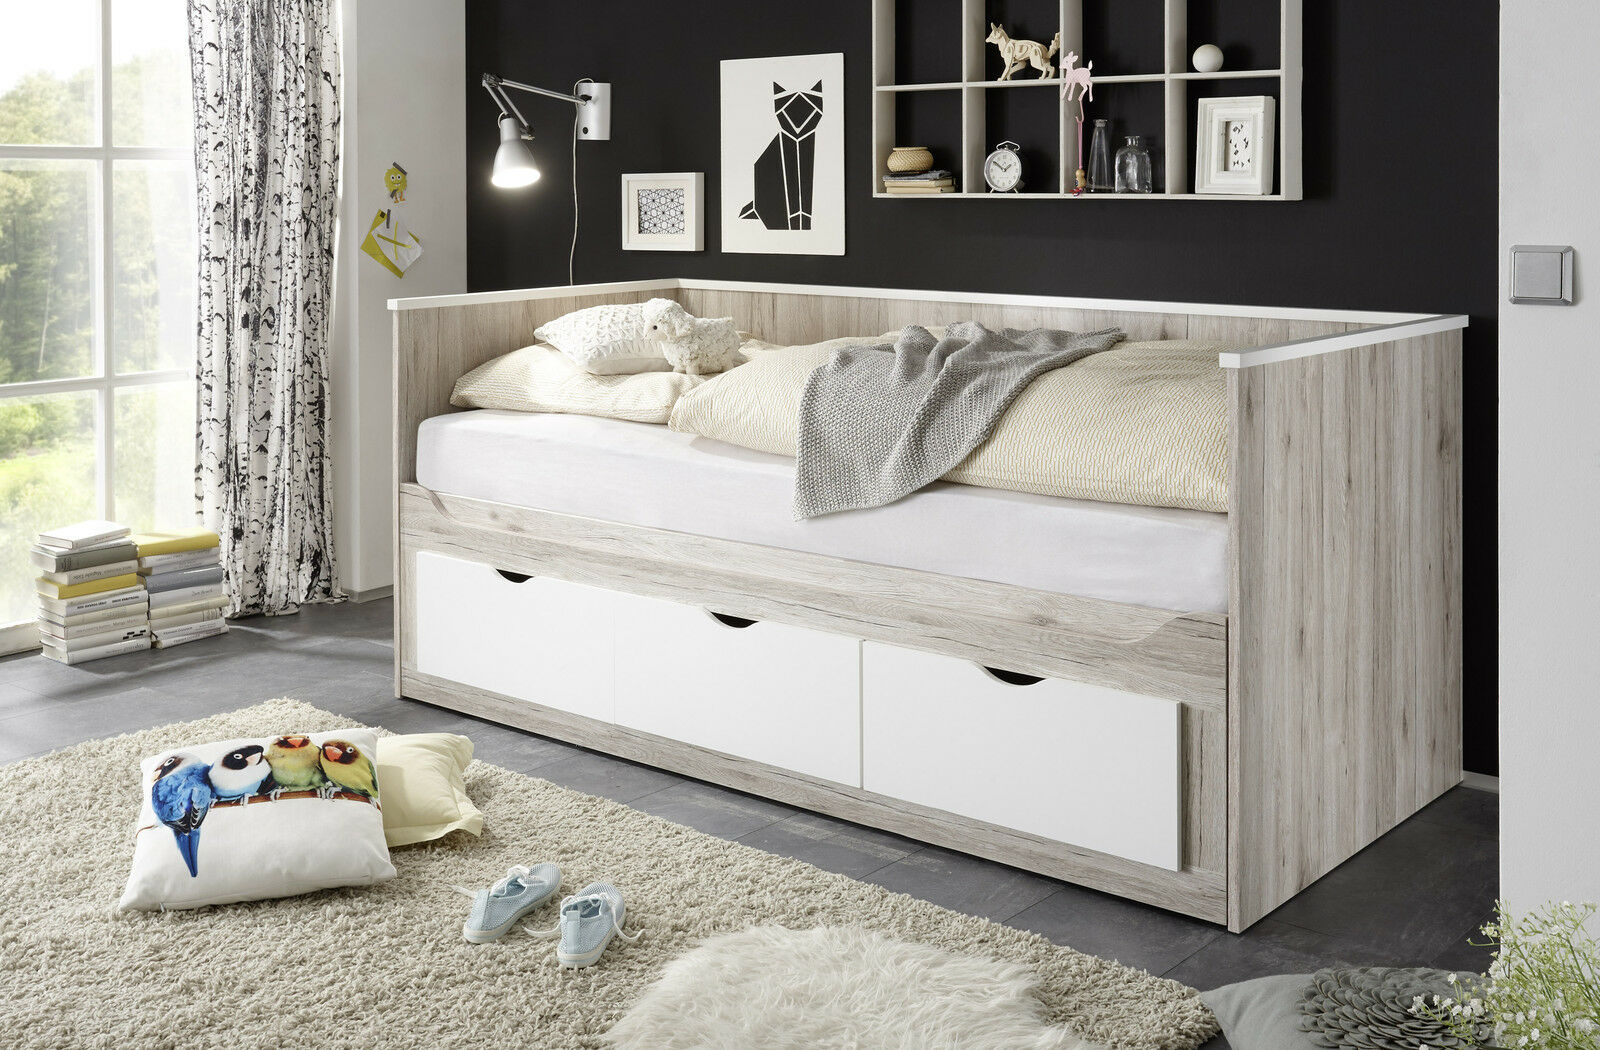 tandemliege oscar kinderbett wei bettgestell bett kojenbett 90x200 cm eur 399 00. Black Bedroom Furniture Sets. Home Design Ideas